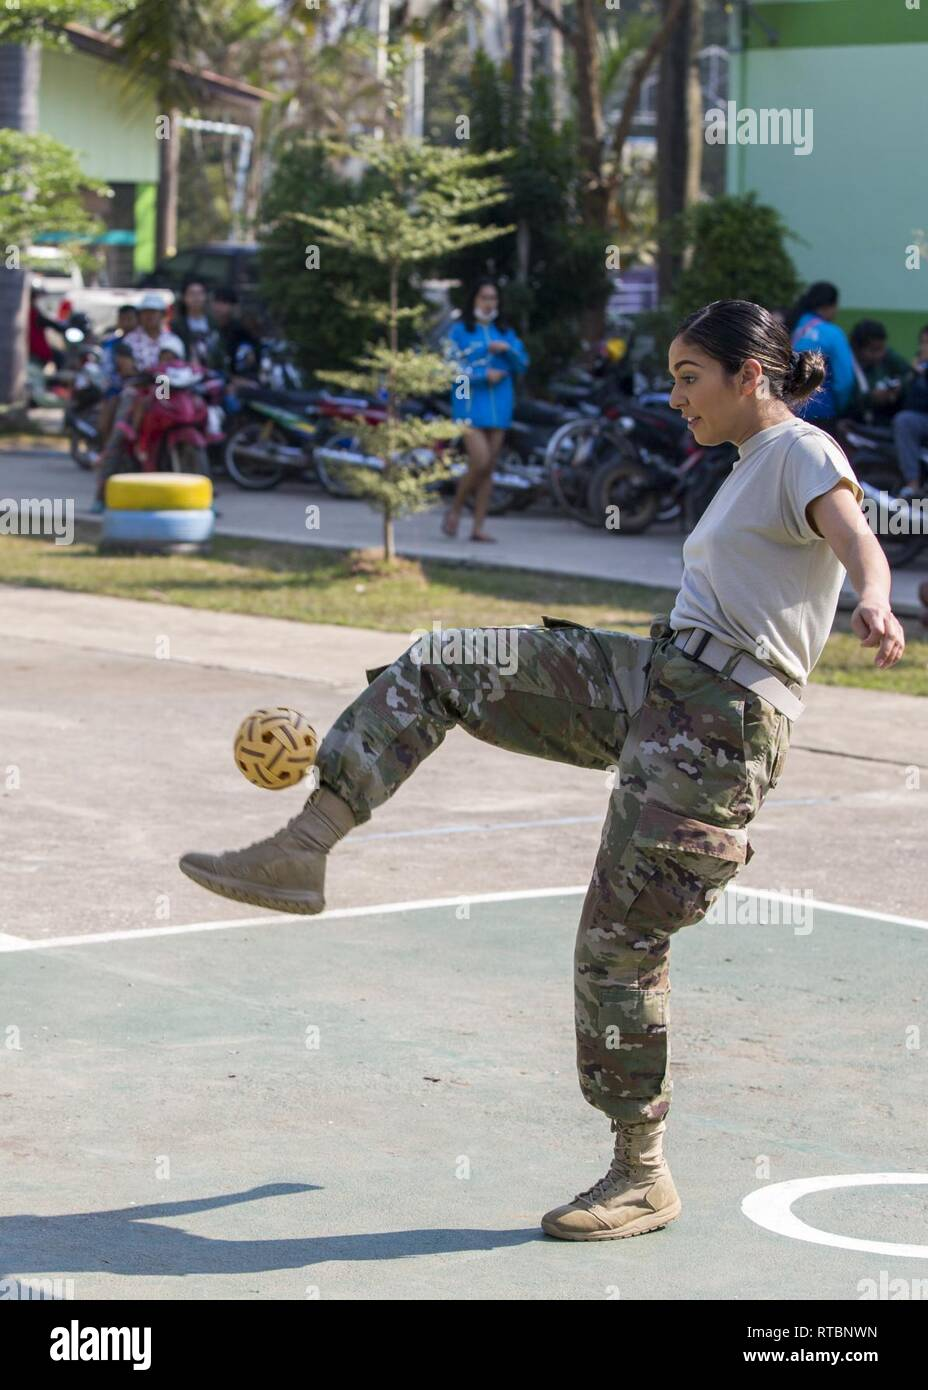 U.S. Army Spc. Erica Gonzales with 416th Civil Affairs Battalion (airborne) with Bravo Company, 5th Psychological Operations Battalion (airborne) participates in a game of Sepak Takrah at the Watjomthong School for the Annual Sports Day during exercise Cobra Gold 19, Phitsanulok, Kingdom of Thailand, Feb. 9, 2019. Cobra Gold is one of the largest theater security cooperation exercises in the Indo-Pacific and is an integral part of the U.S. commitment to strengthen engagement in the region. Cobra Gold 19, the 38th interation of this exercise, emphasizes coordination on civic action, such as hum - Stock Image